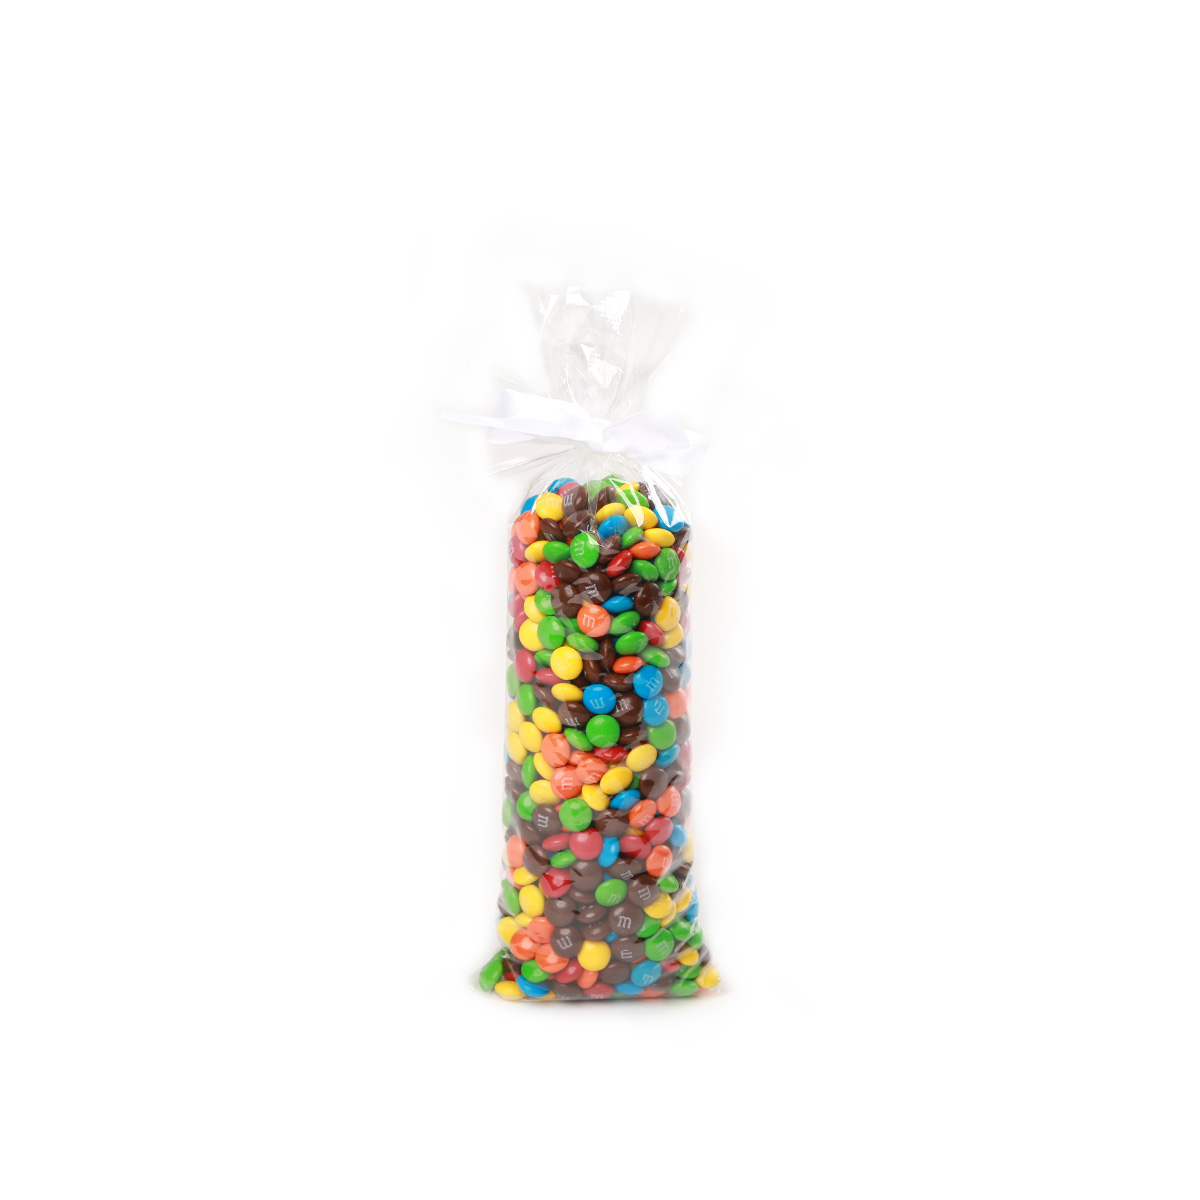 8oz M&M's in cello bag